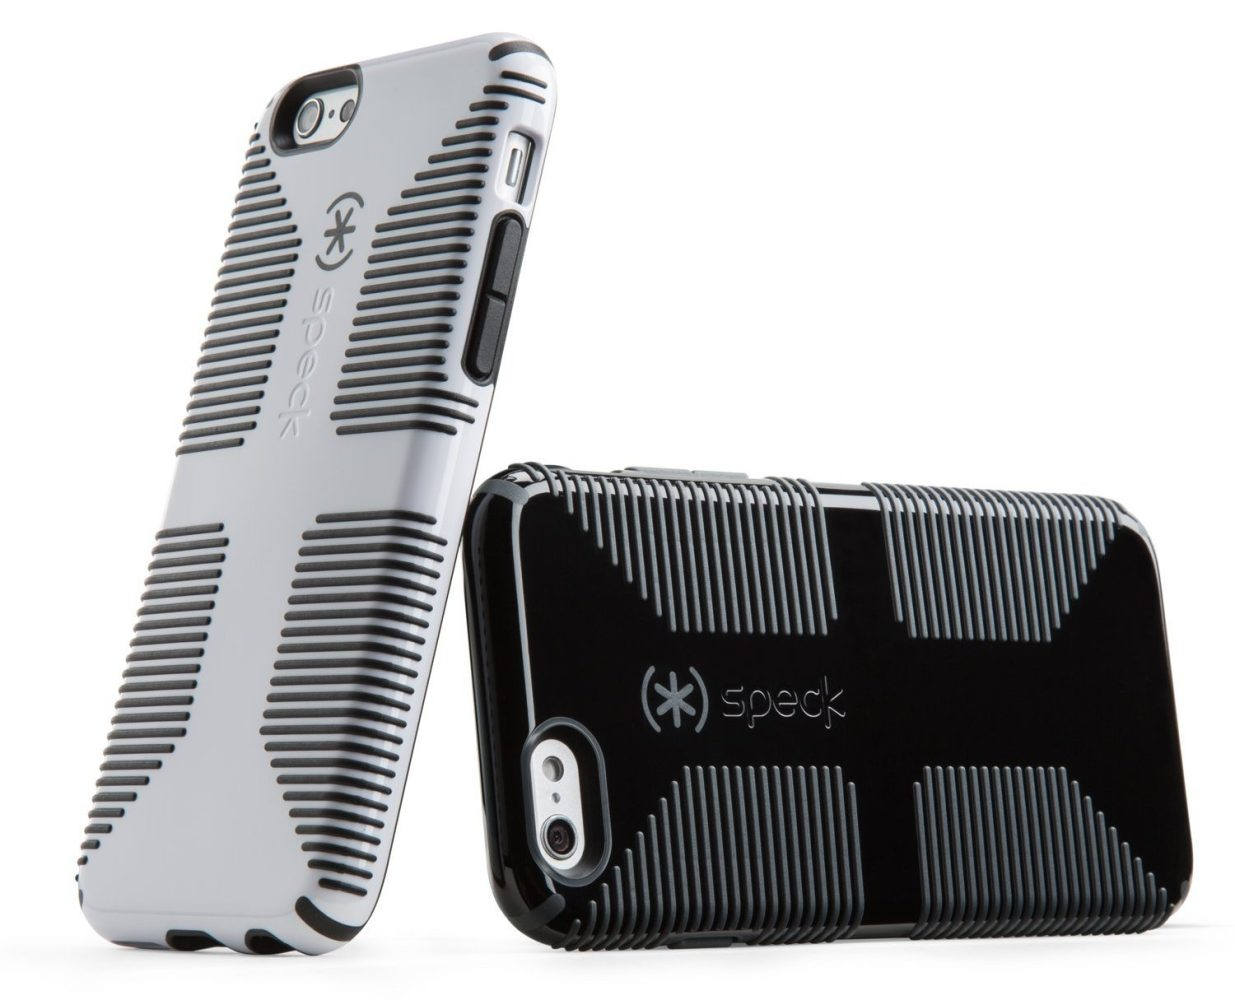 timeless design 76725 0d95d 9to5Toys Last Call: Speck iPhone 6 cases from $19, 2015 MacBook Air ...